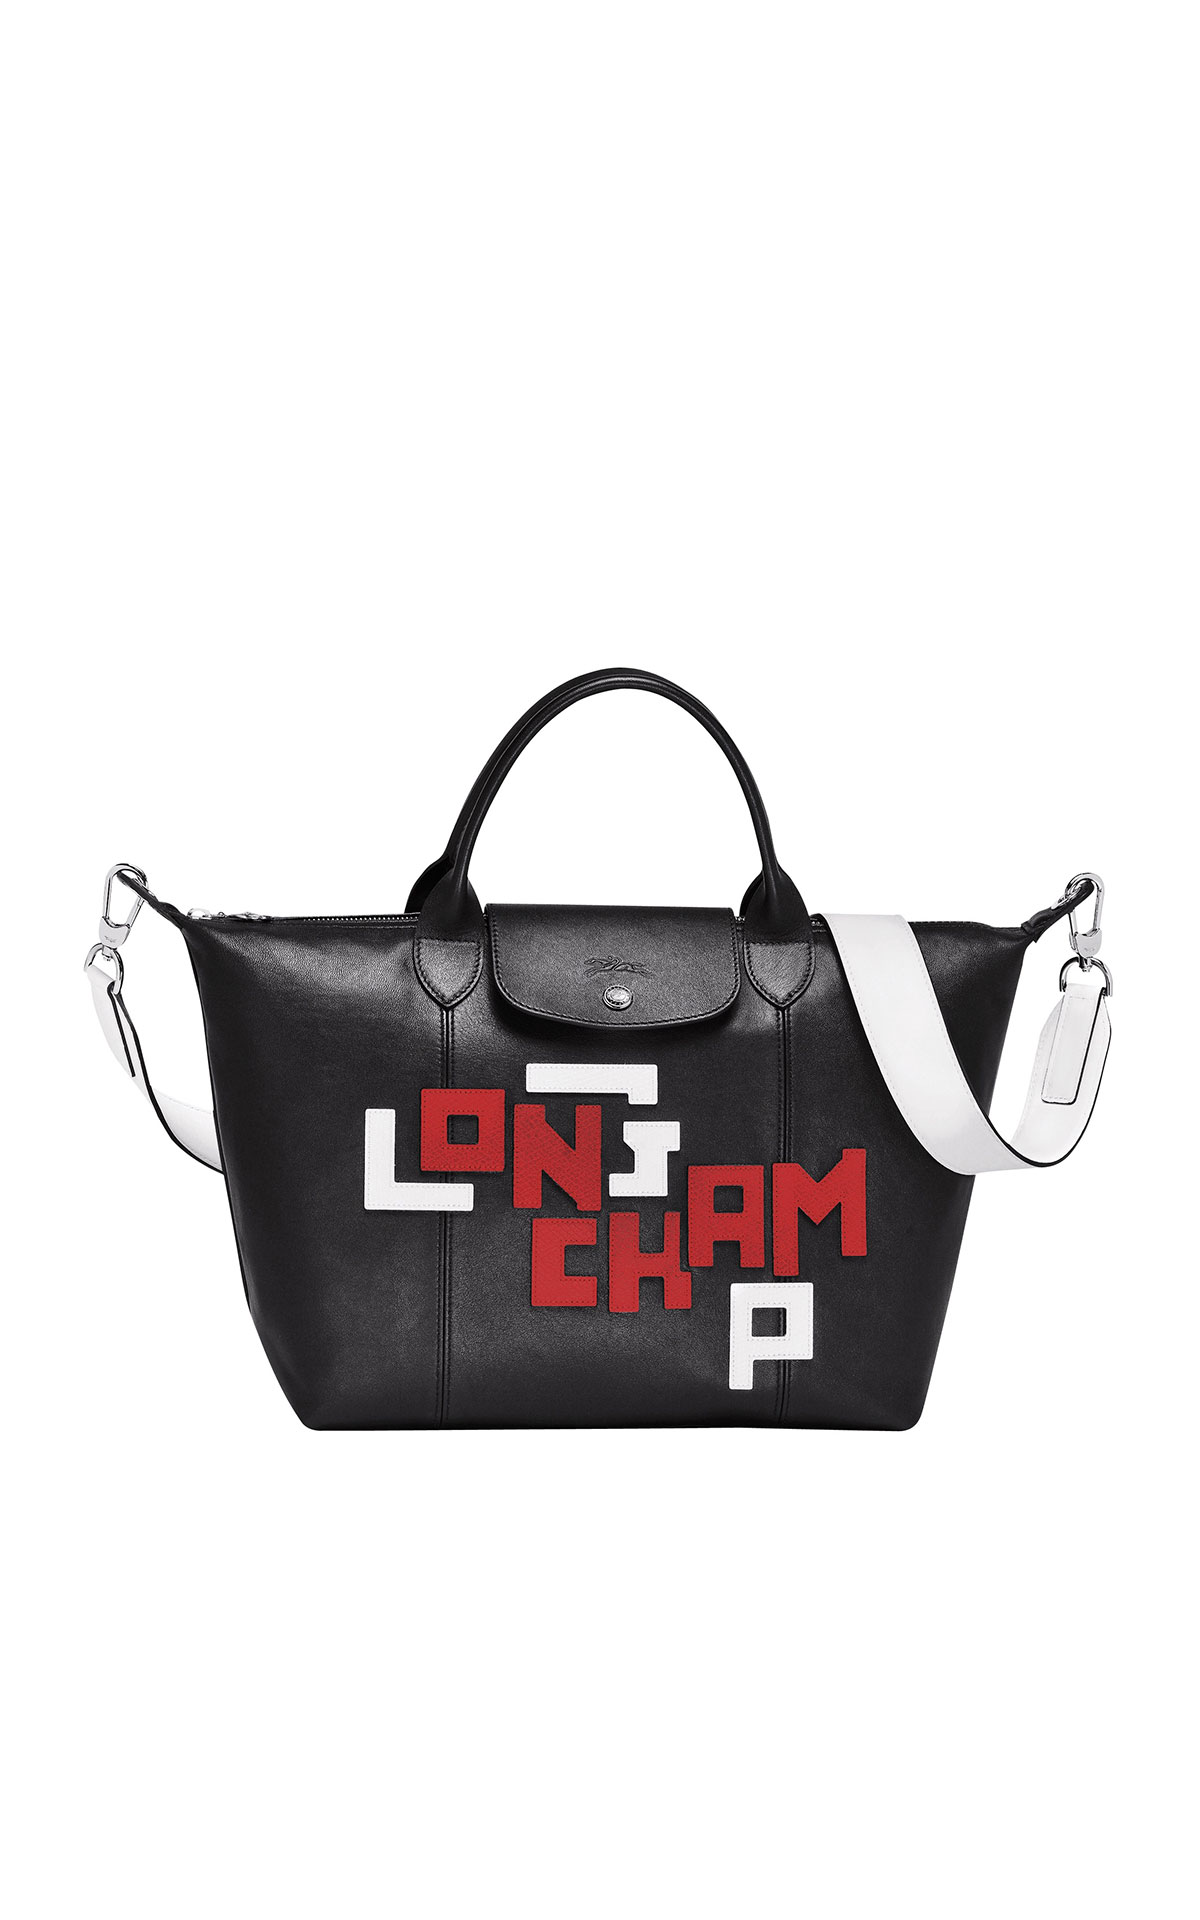 Longchamp Leather medium sized top handle bag with leather top-stitched Longchamp logo from Bicester Village